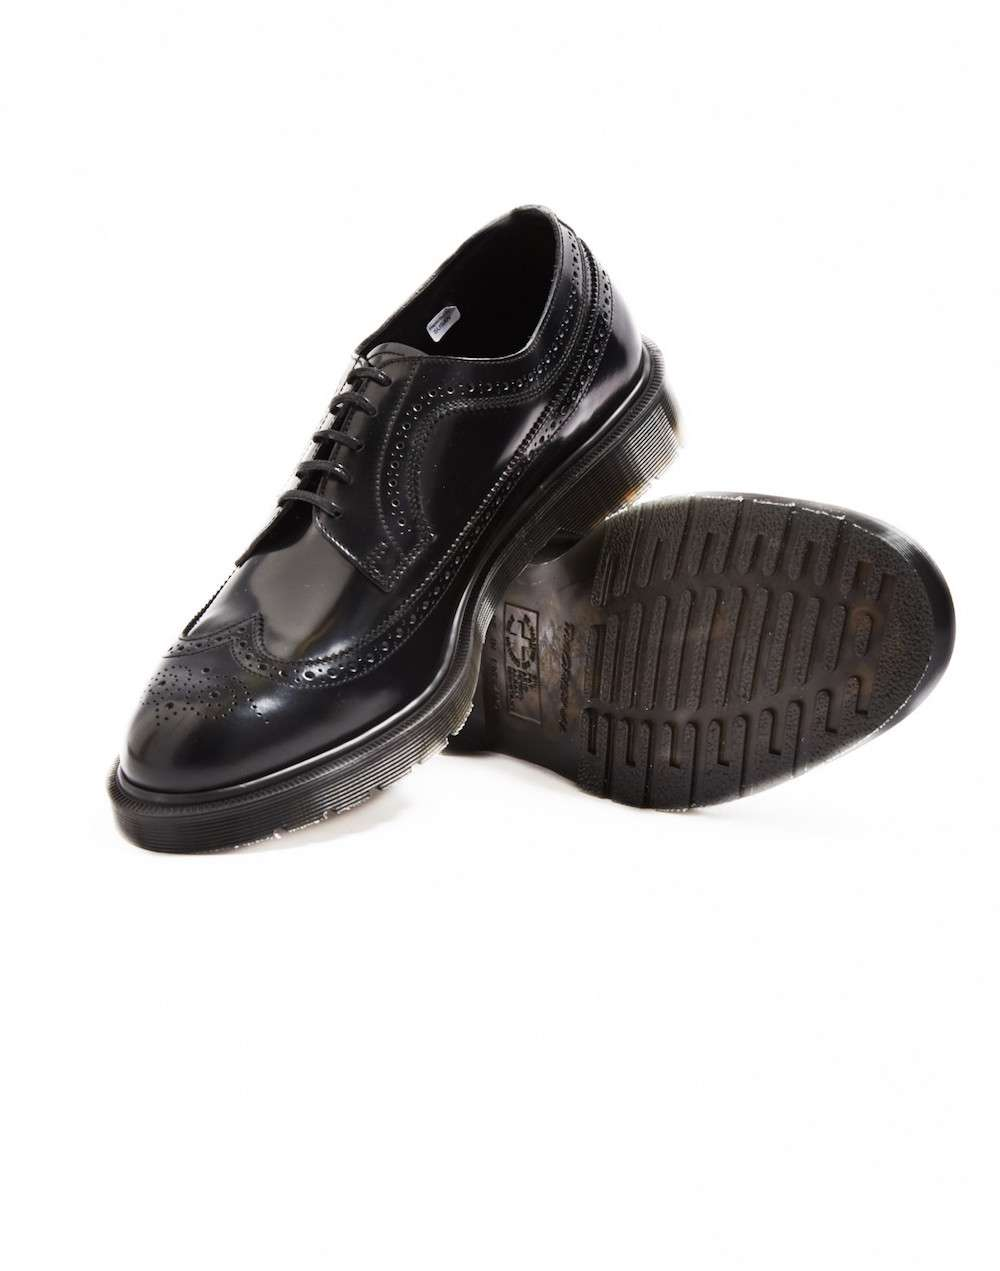 Patent leather black brogues Dr Marten men